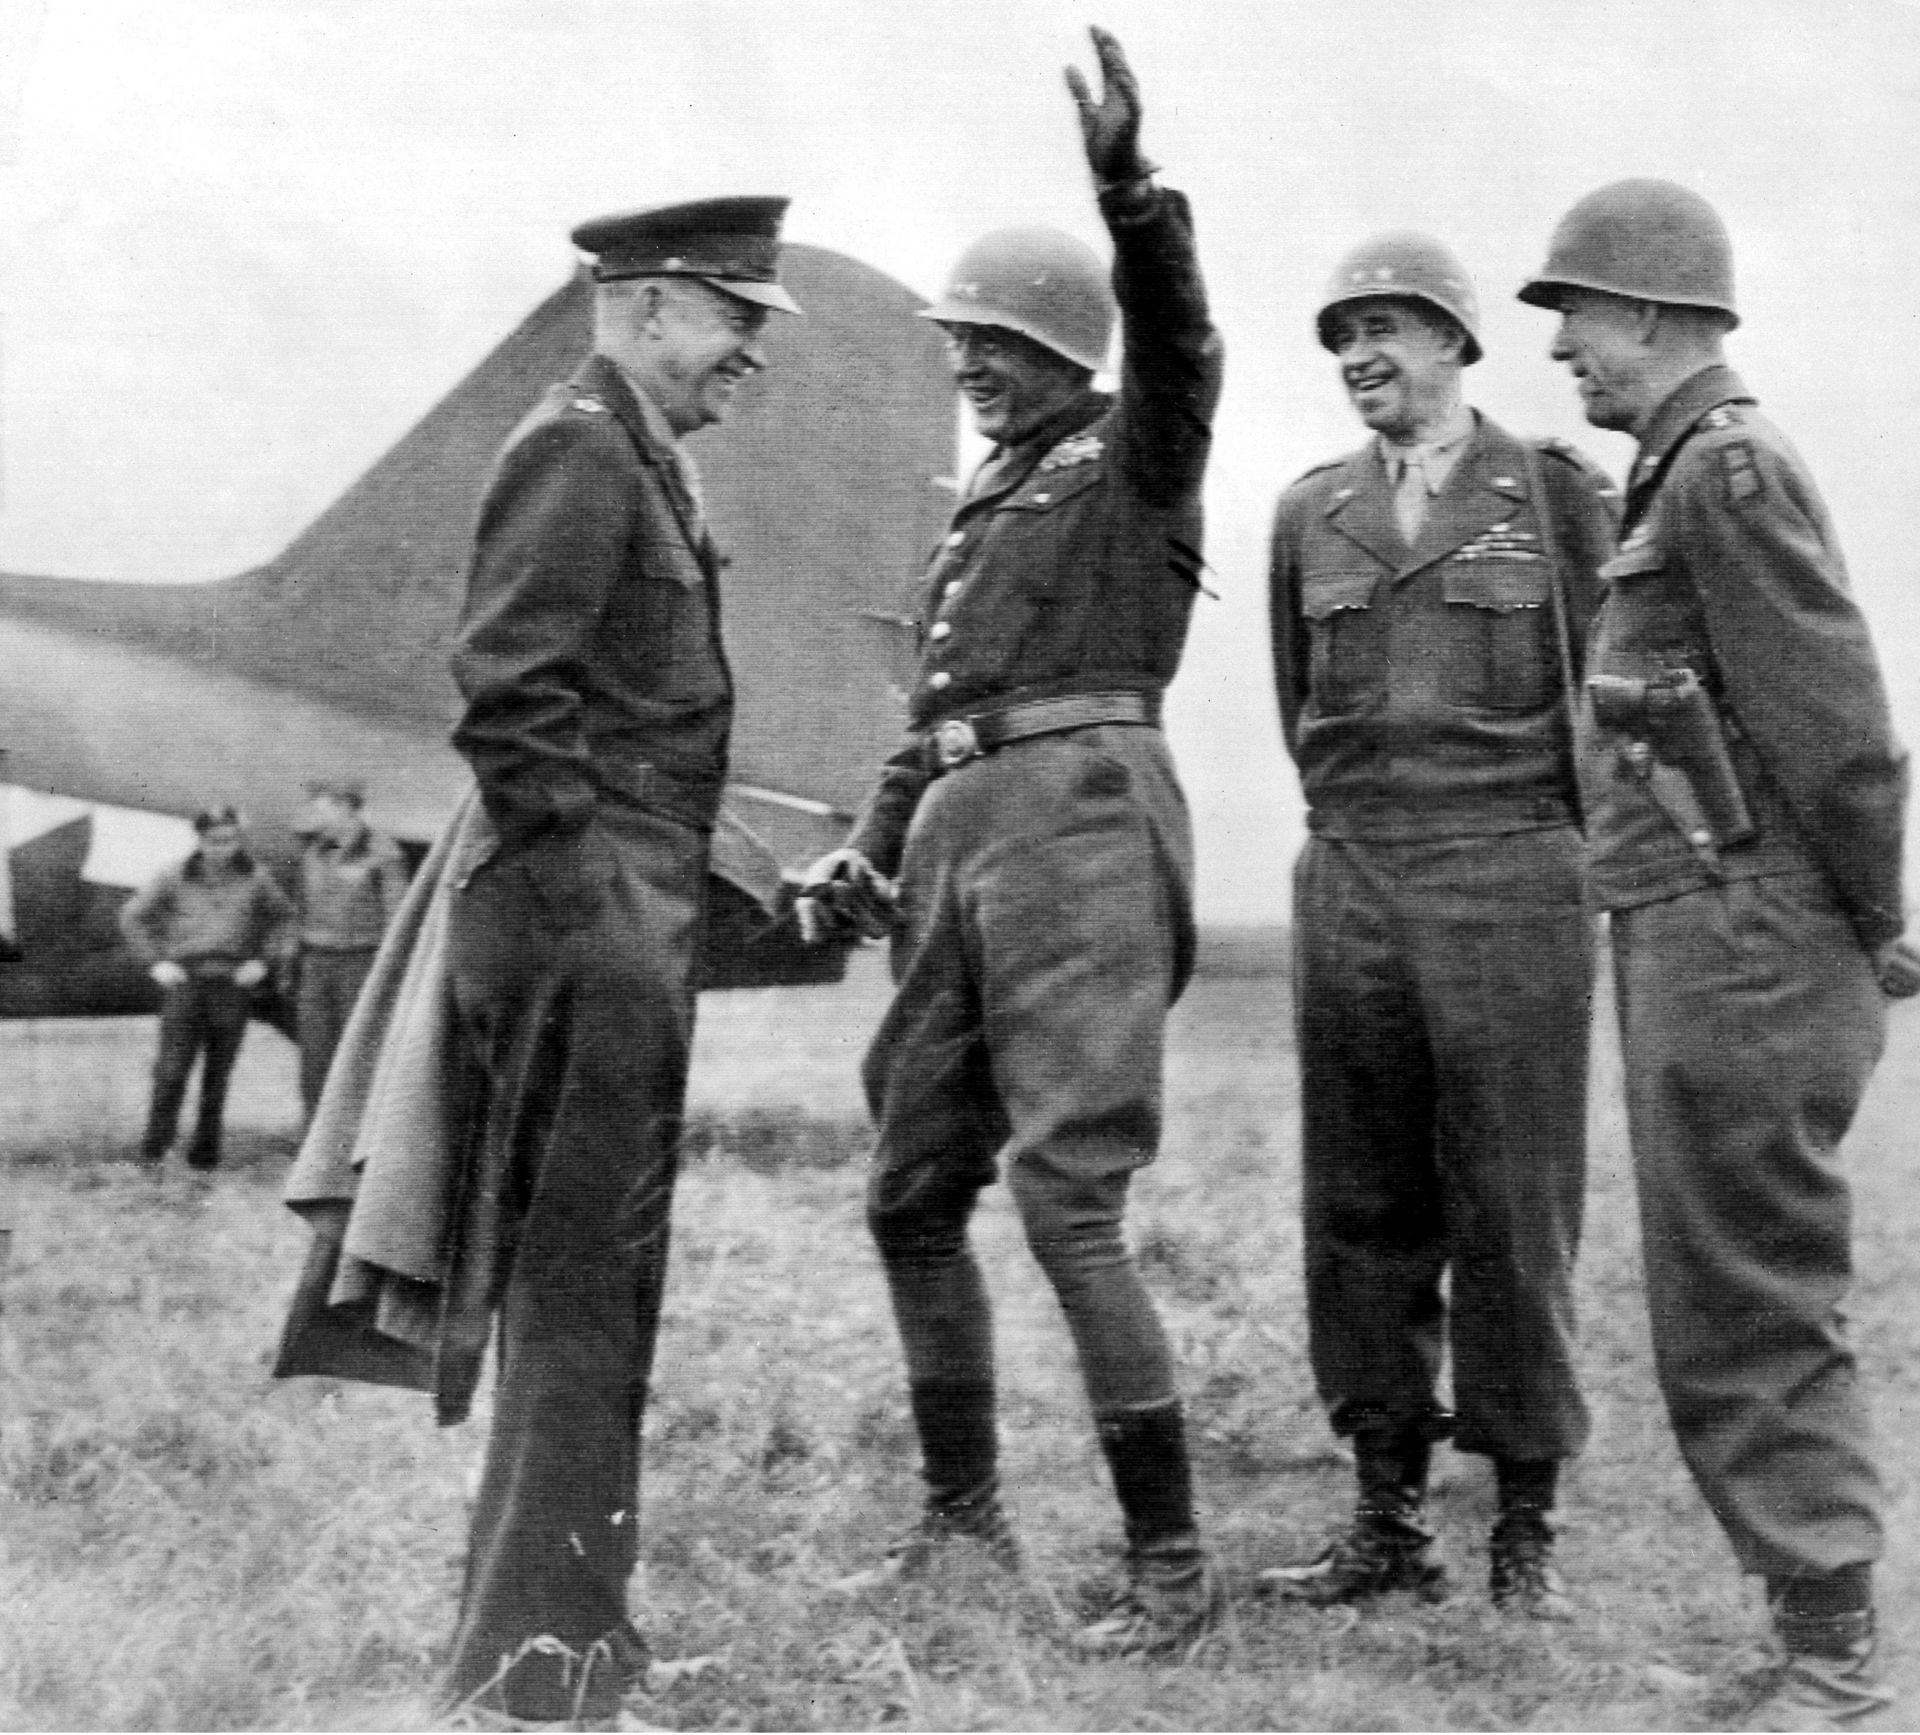 eisenhower-left-as-a-general-during-worl